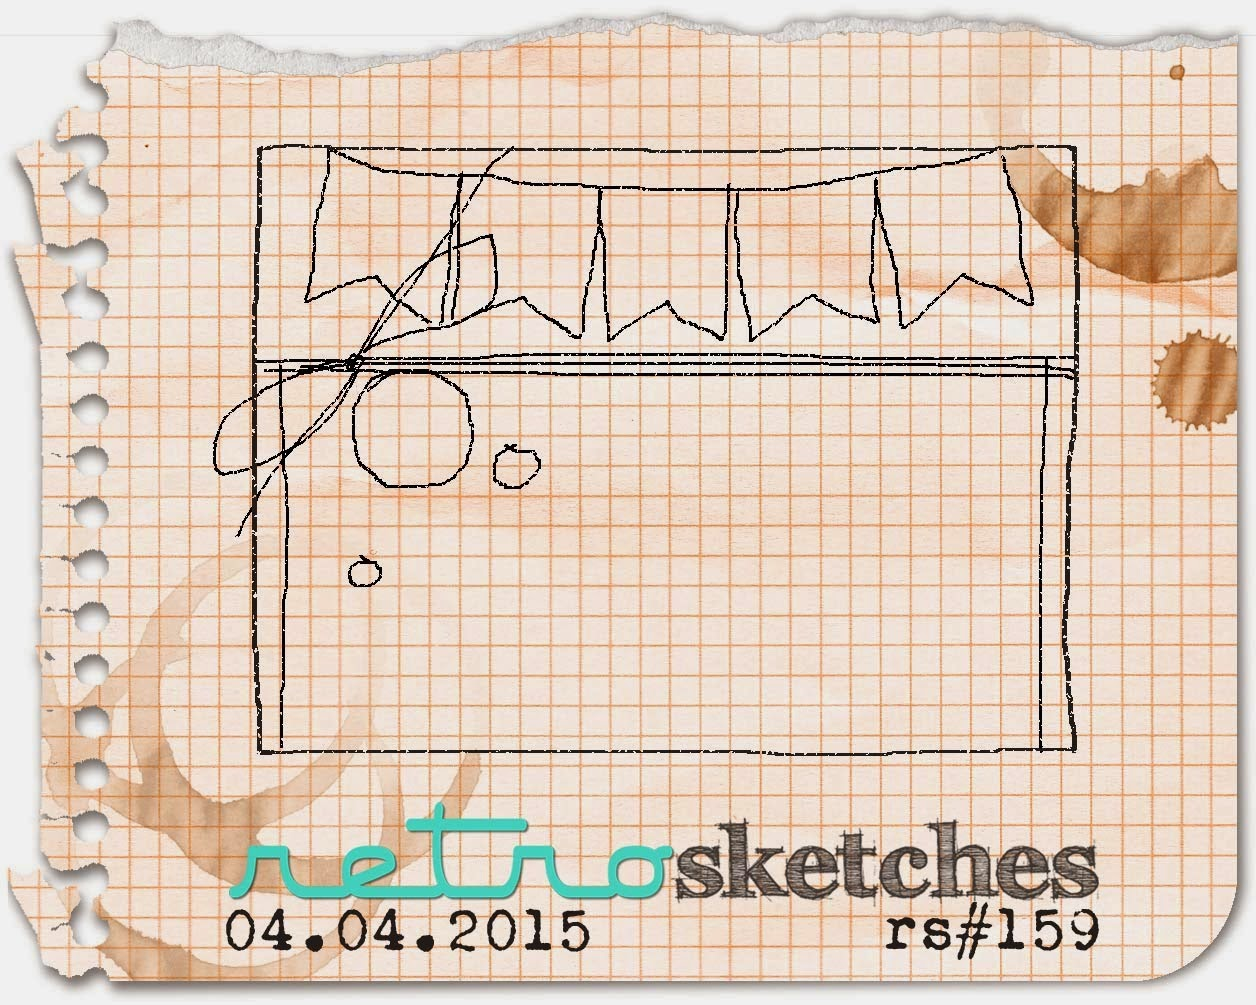 http://retrosketches.blogspot.com/2015/04/retrosketches-159.html